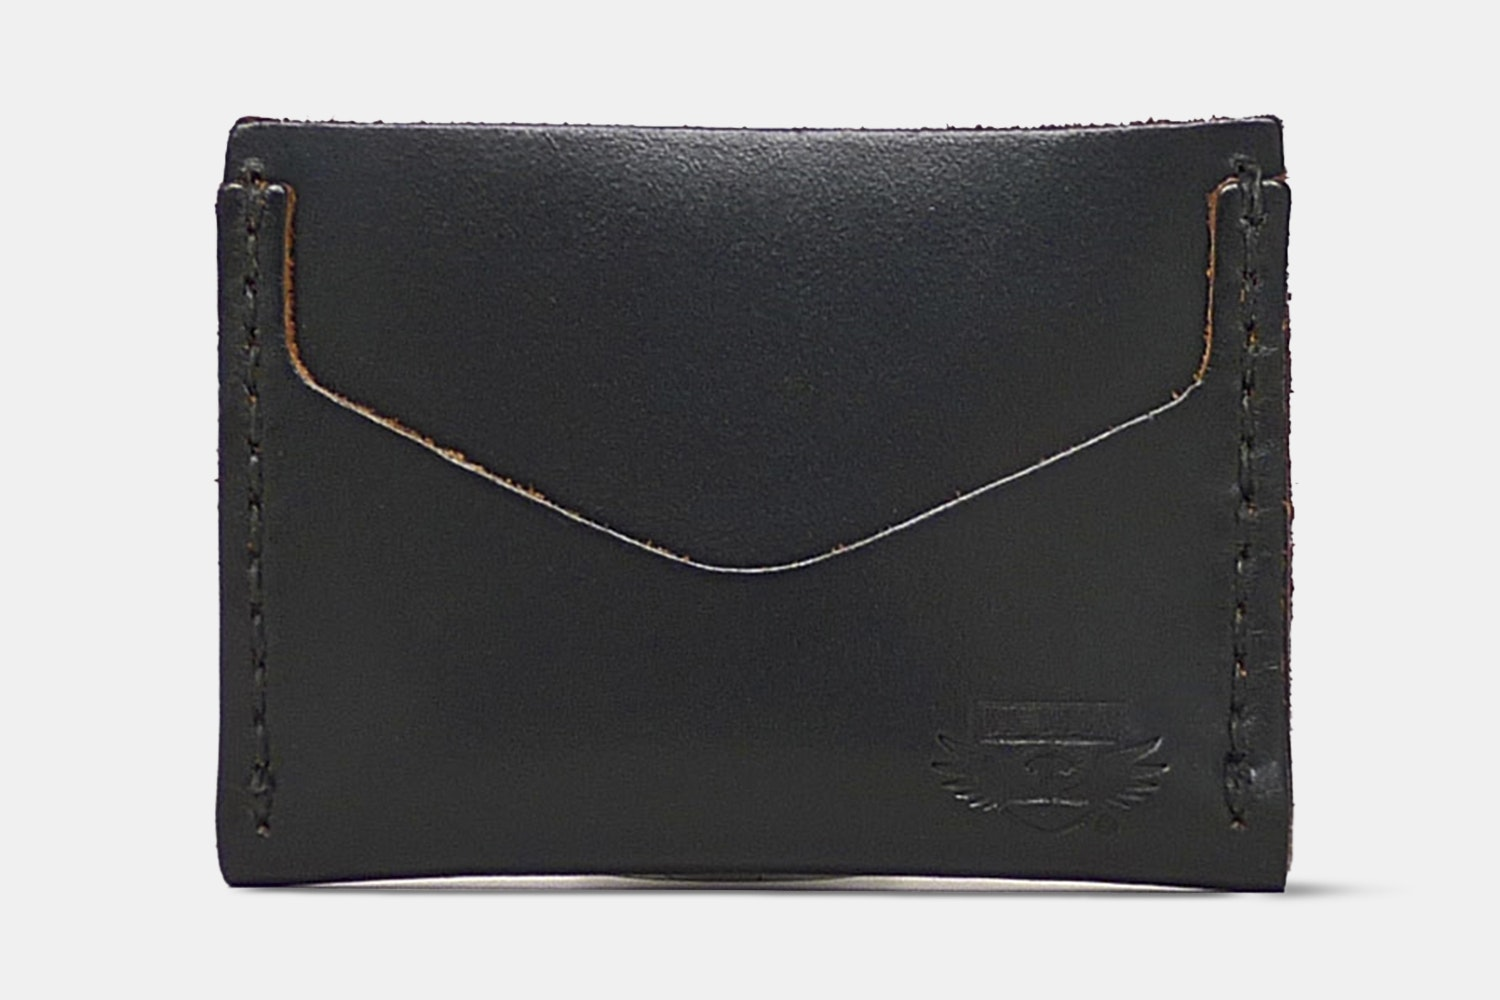 Horizontal Card Wallet - Black Chromexcel - Black CXL